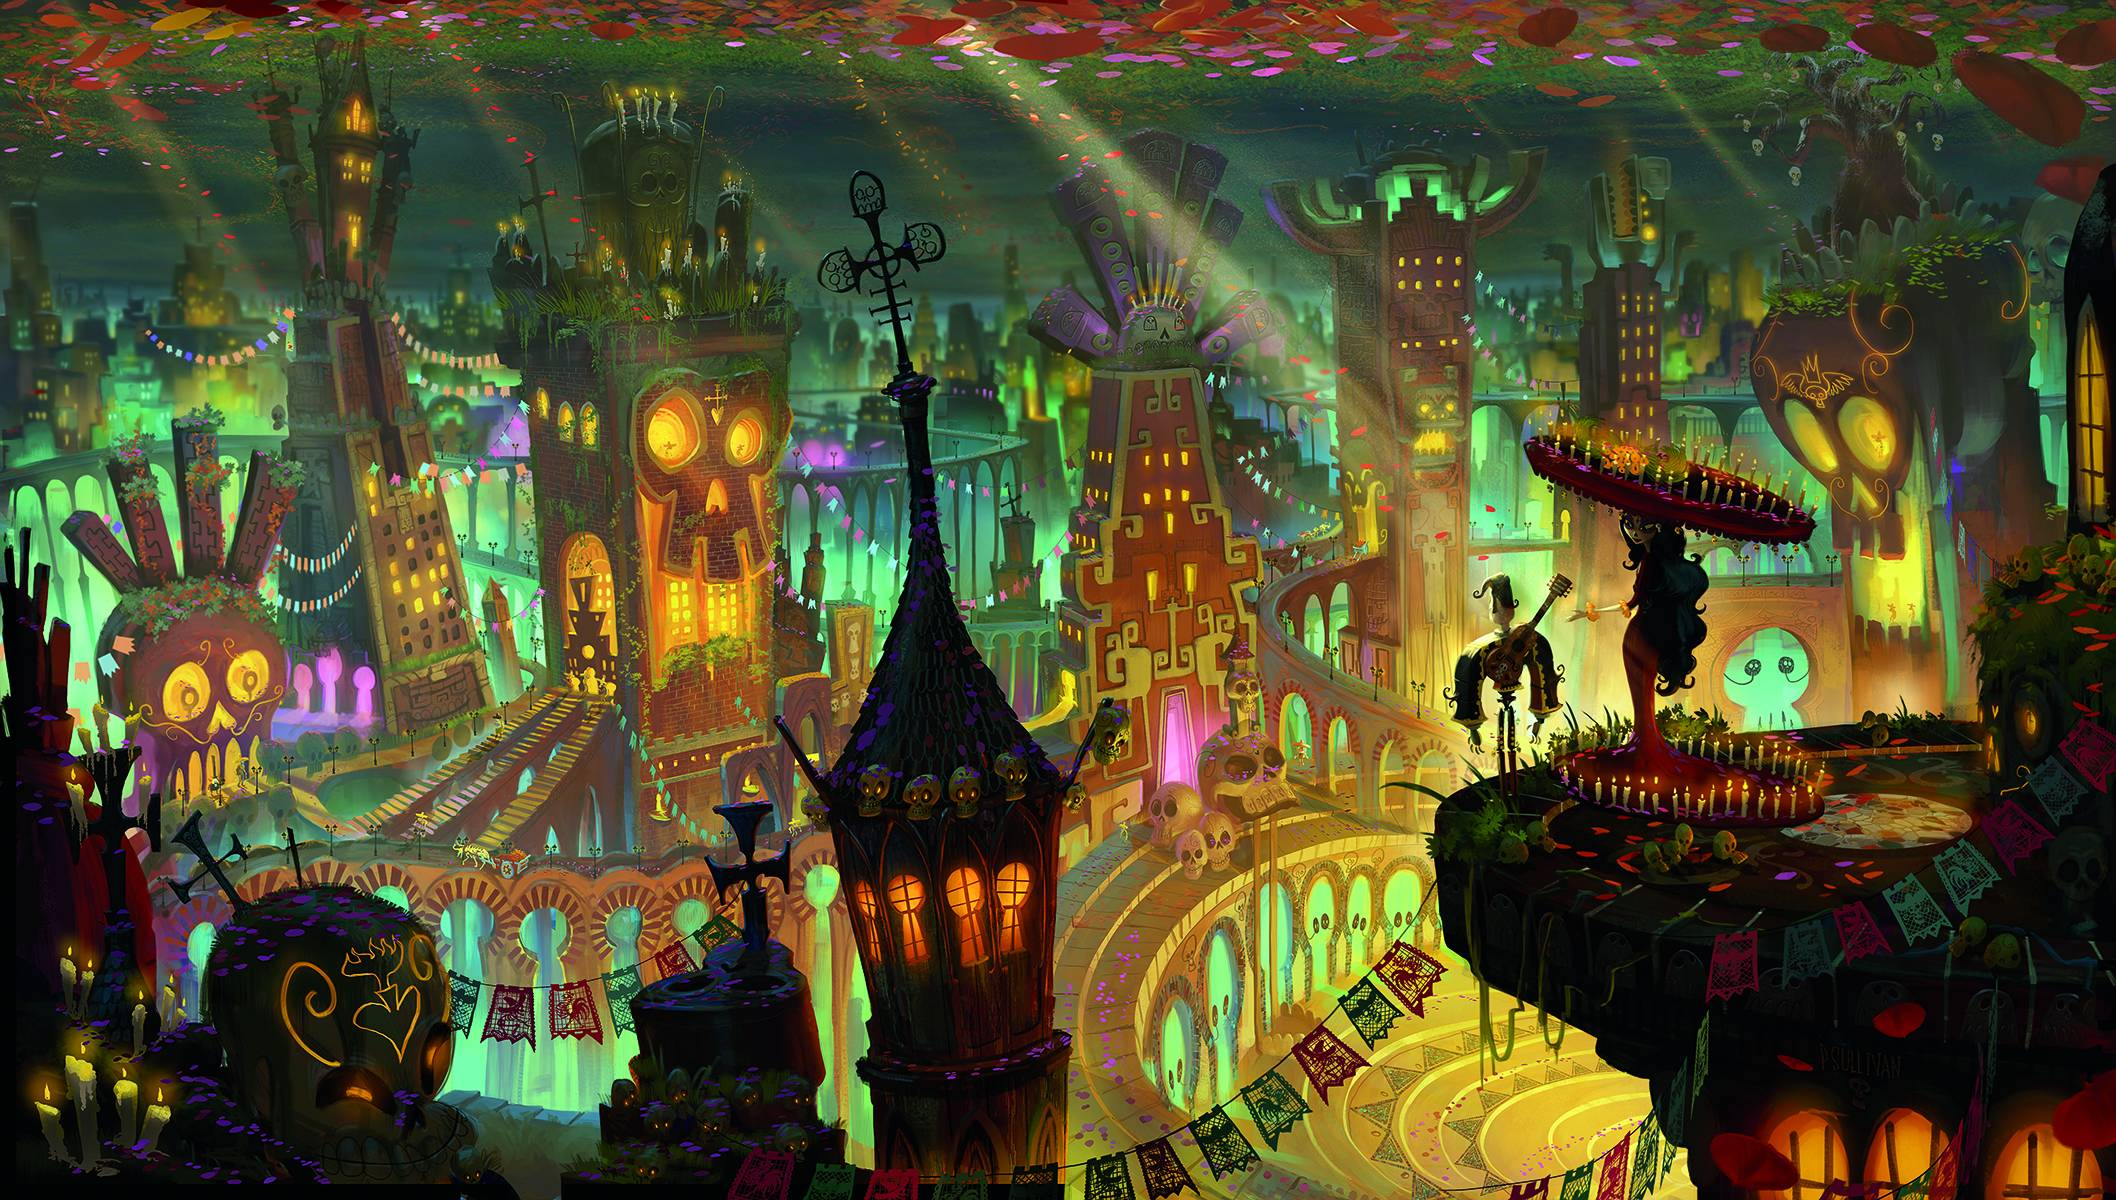 book of life wallpaper  The Book of Life images More Book of life HD wallpaper and ...